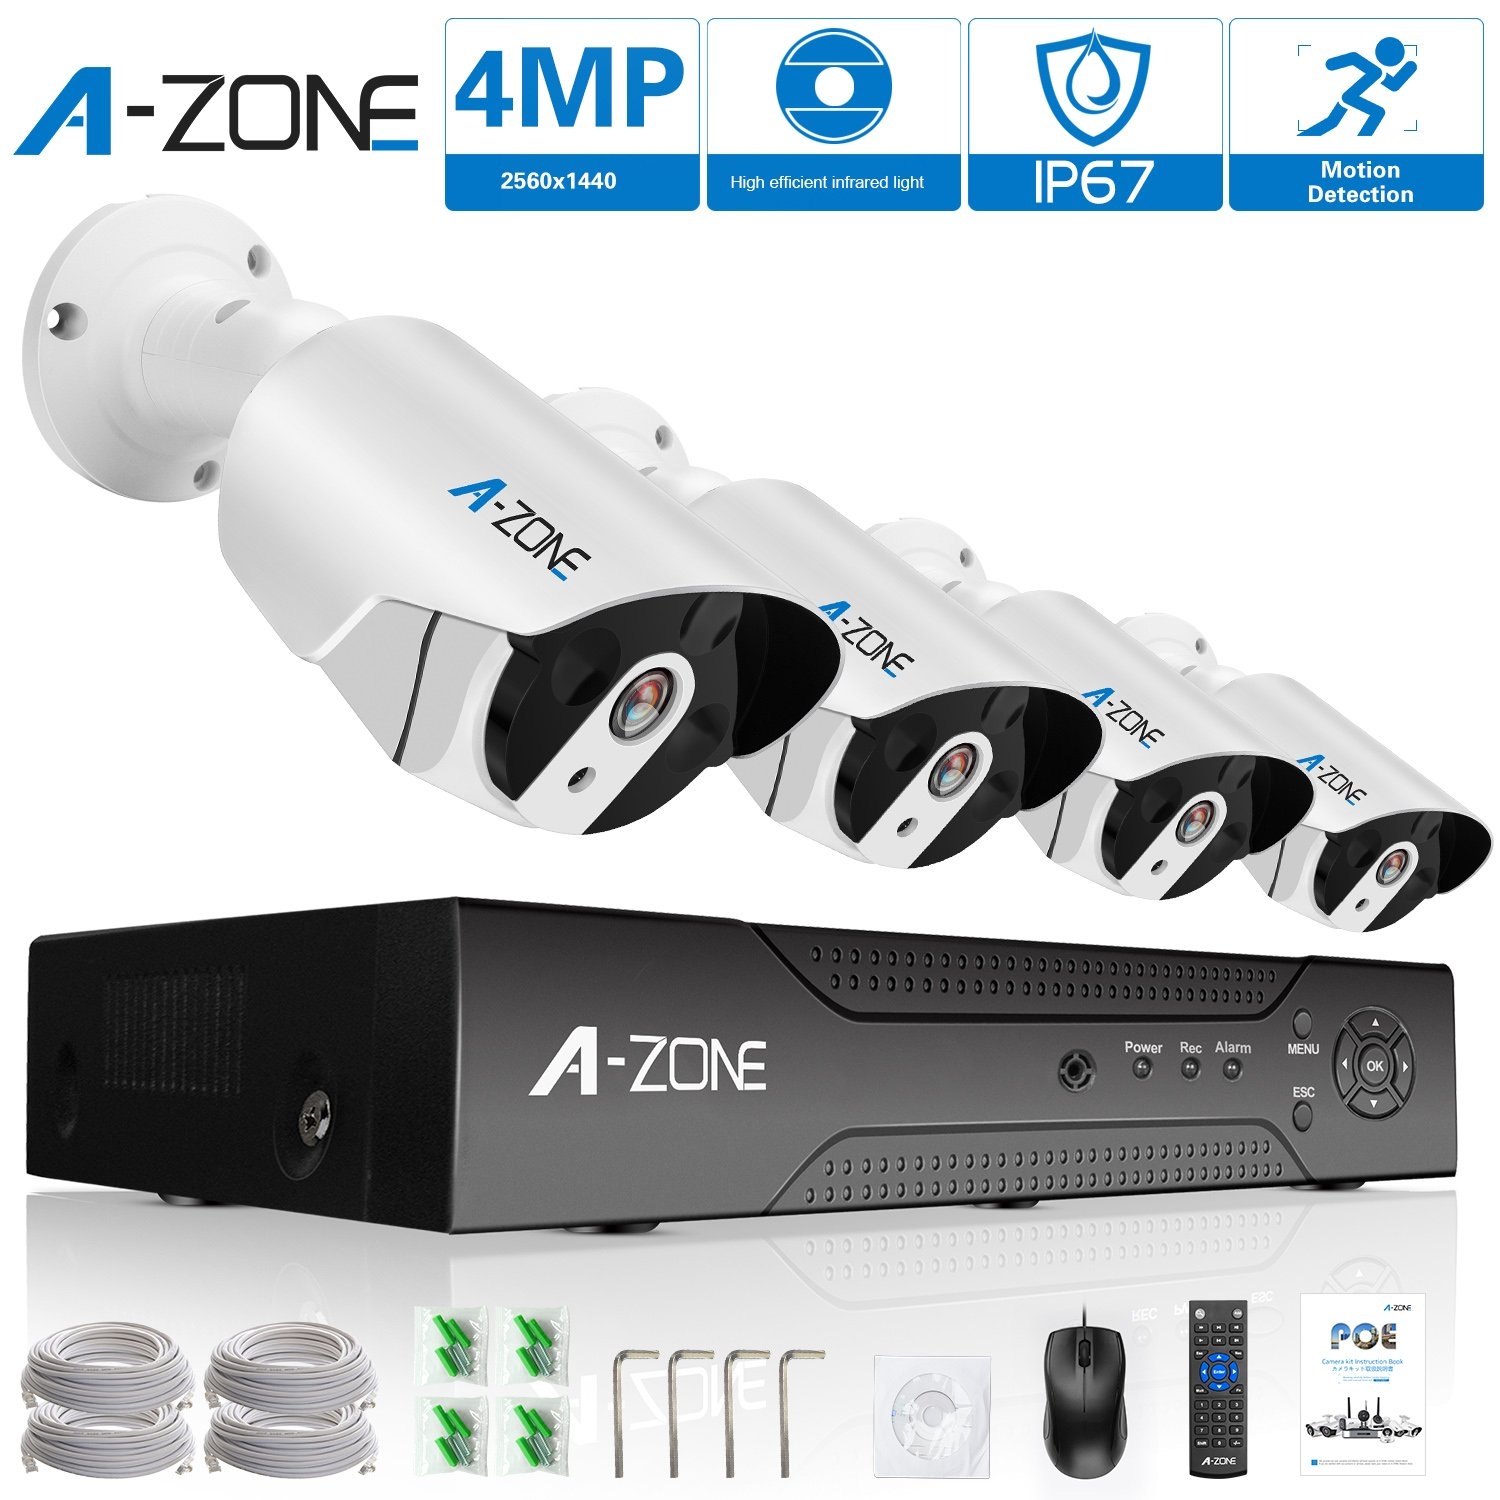 Security Camera System, A-ZONE Home PoE IP Security Camera System 4 Megapixels Super HD 2560x1440 4 Channel NVR with 4 Bullet IP Cameras 24/7 Recording,without HDD